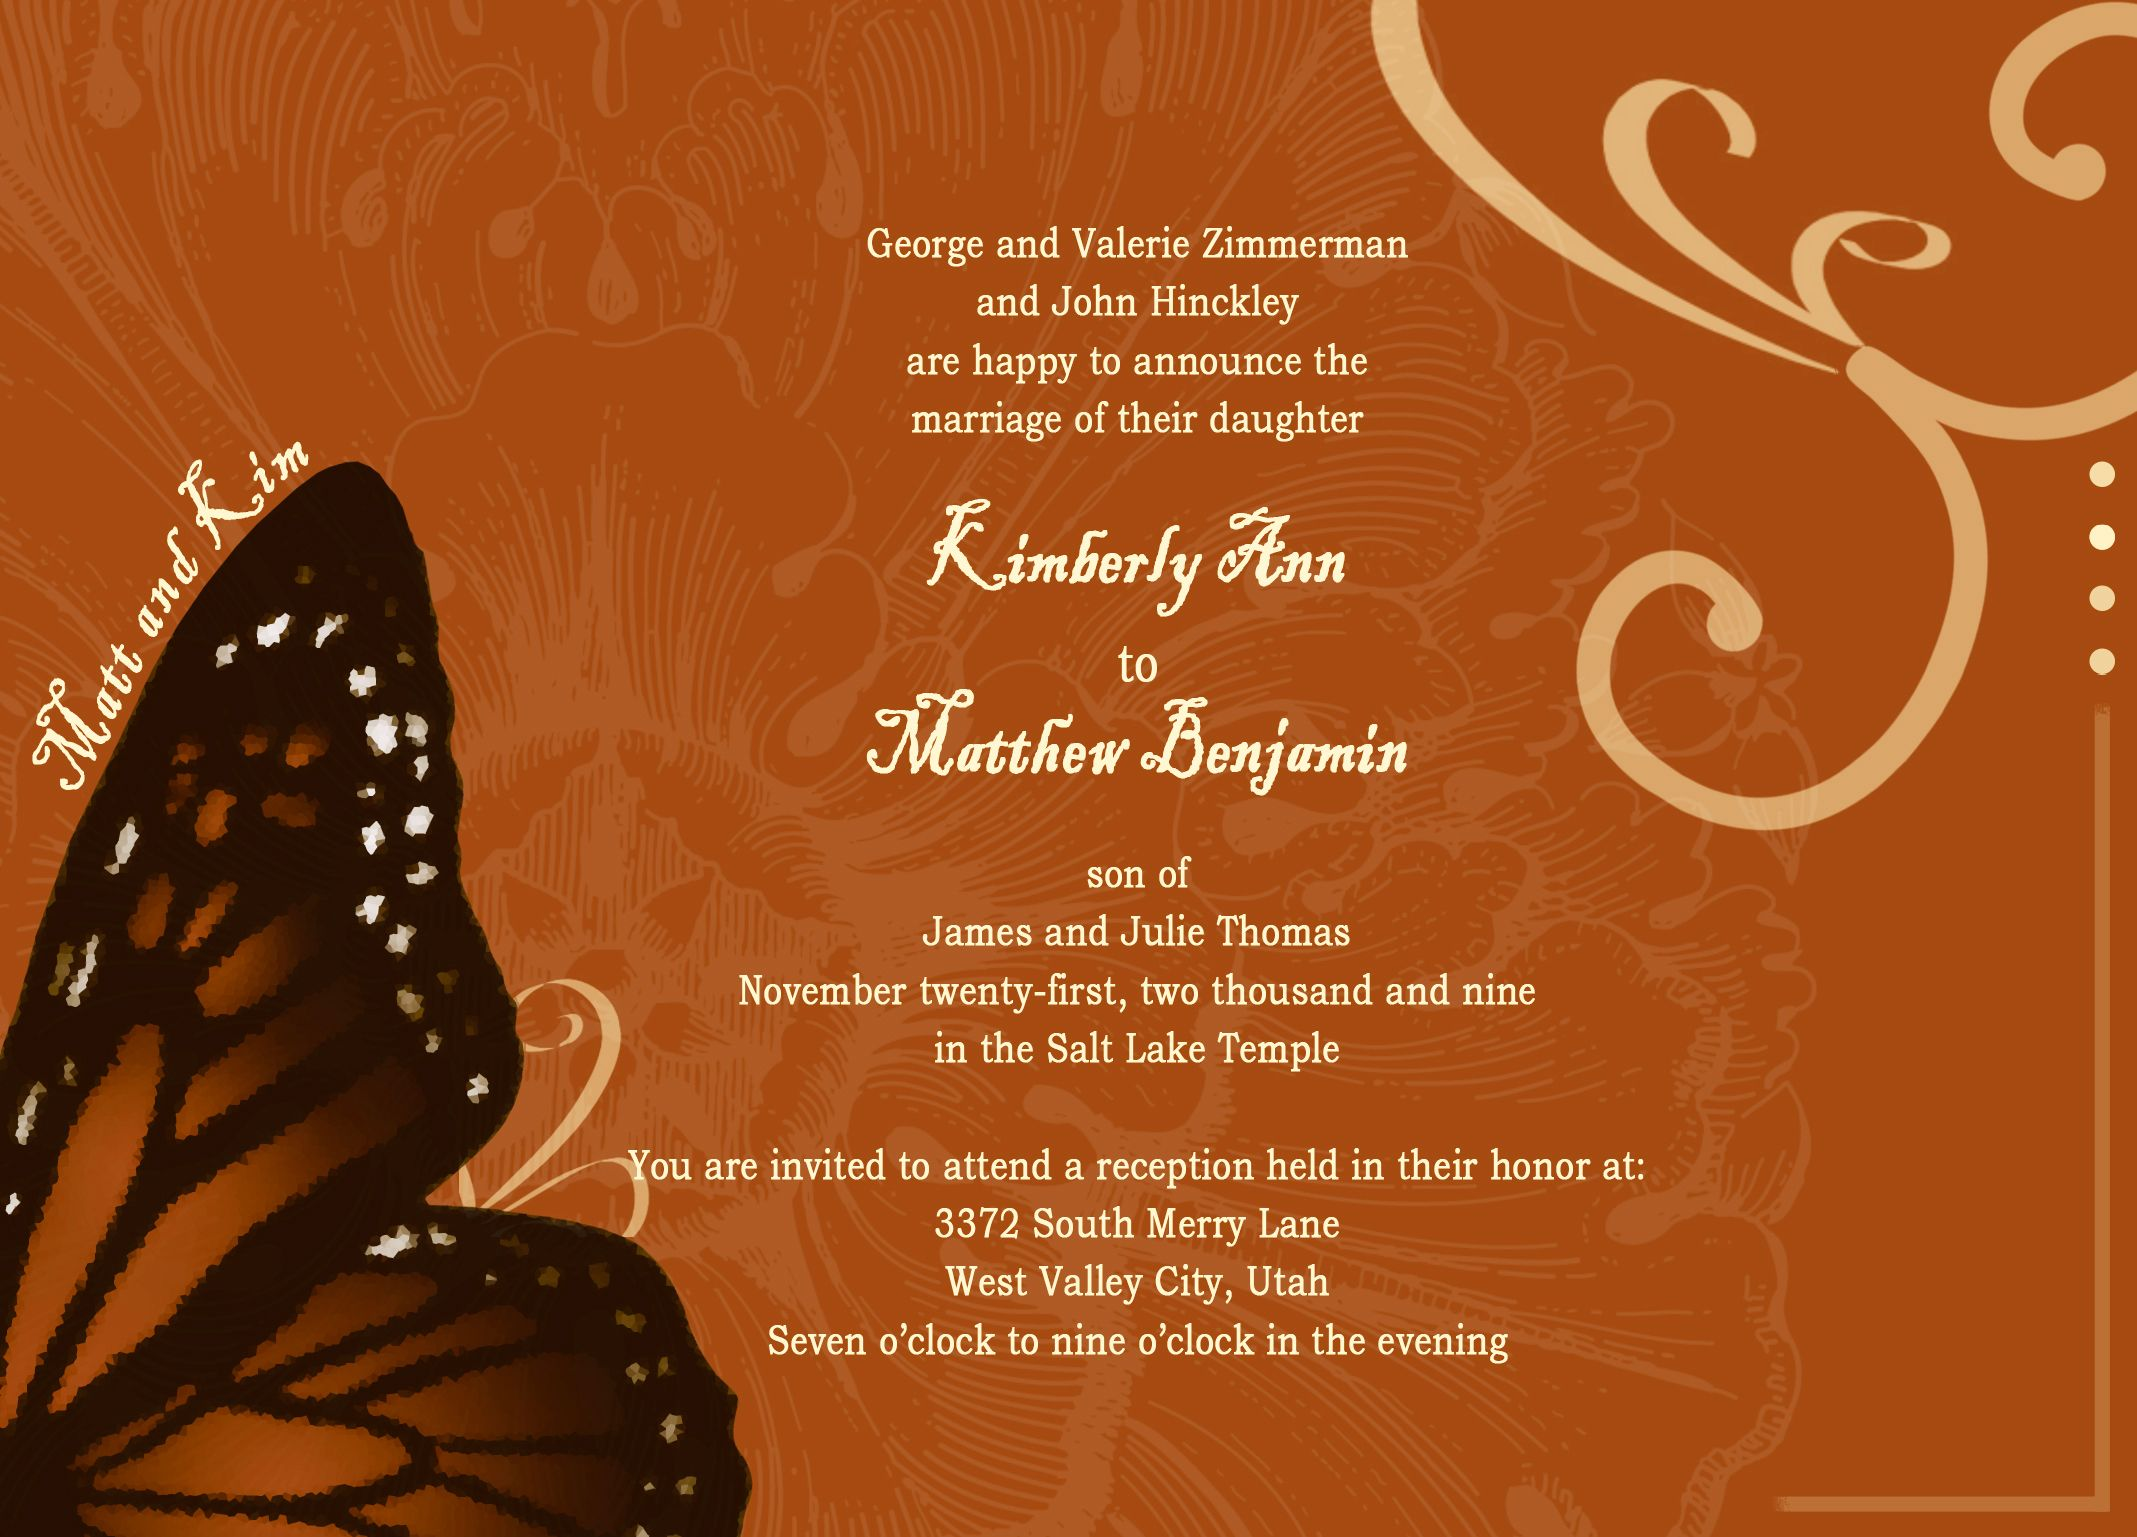 Best Marriage Invitation Card Design Personal Wedding